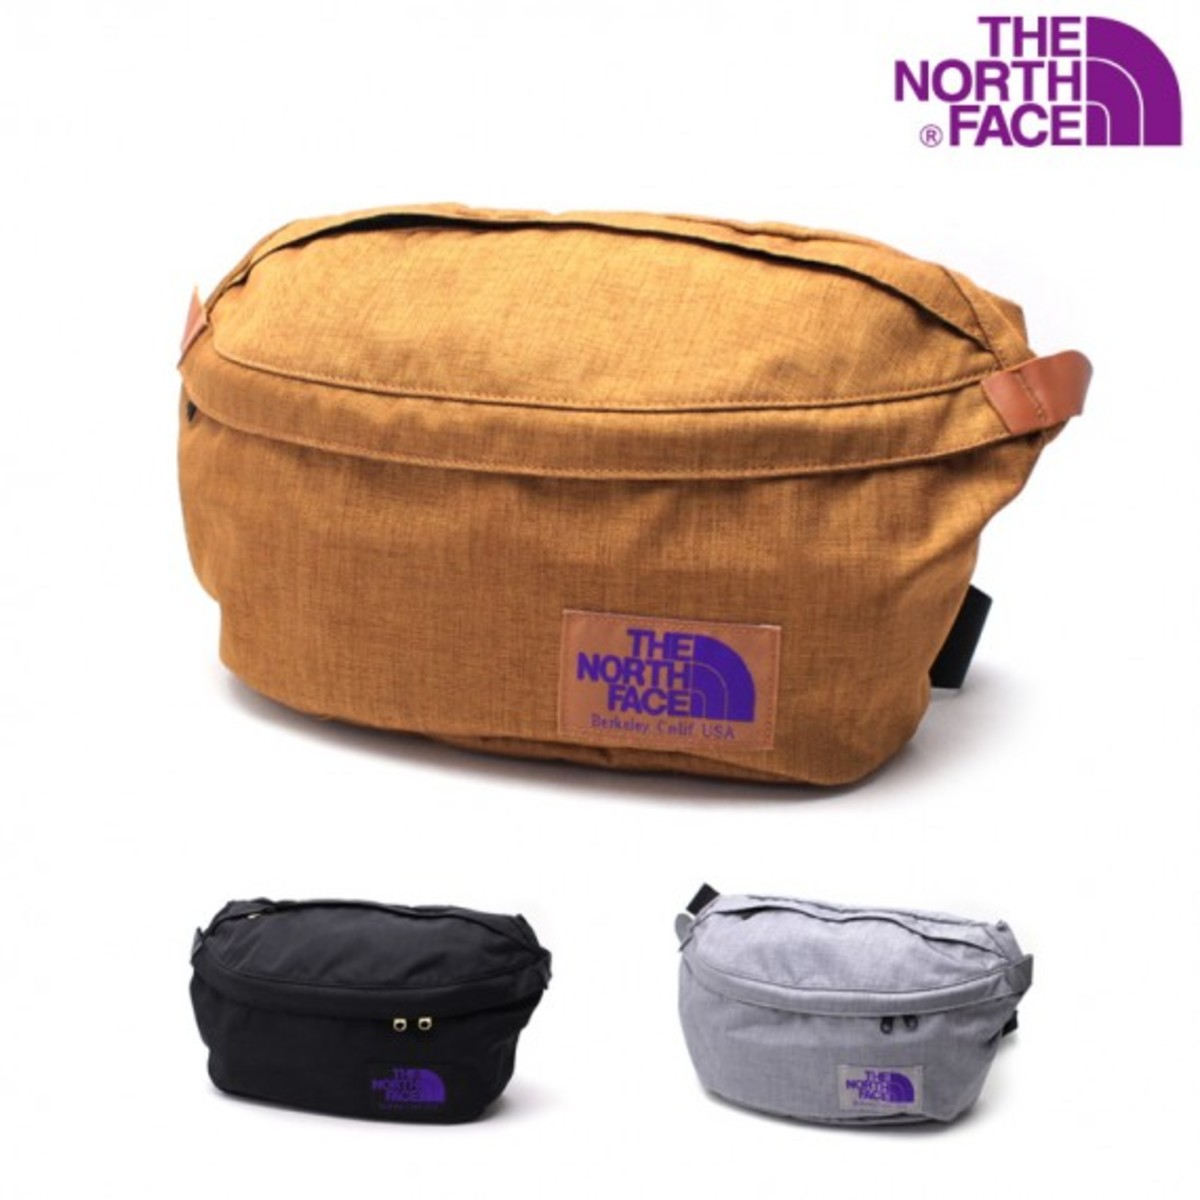 the-north-face-purple-label-fall-2012-bag-collection-06